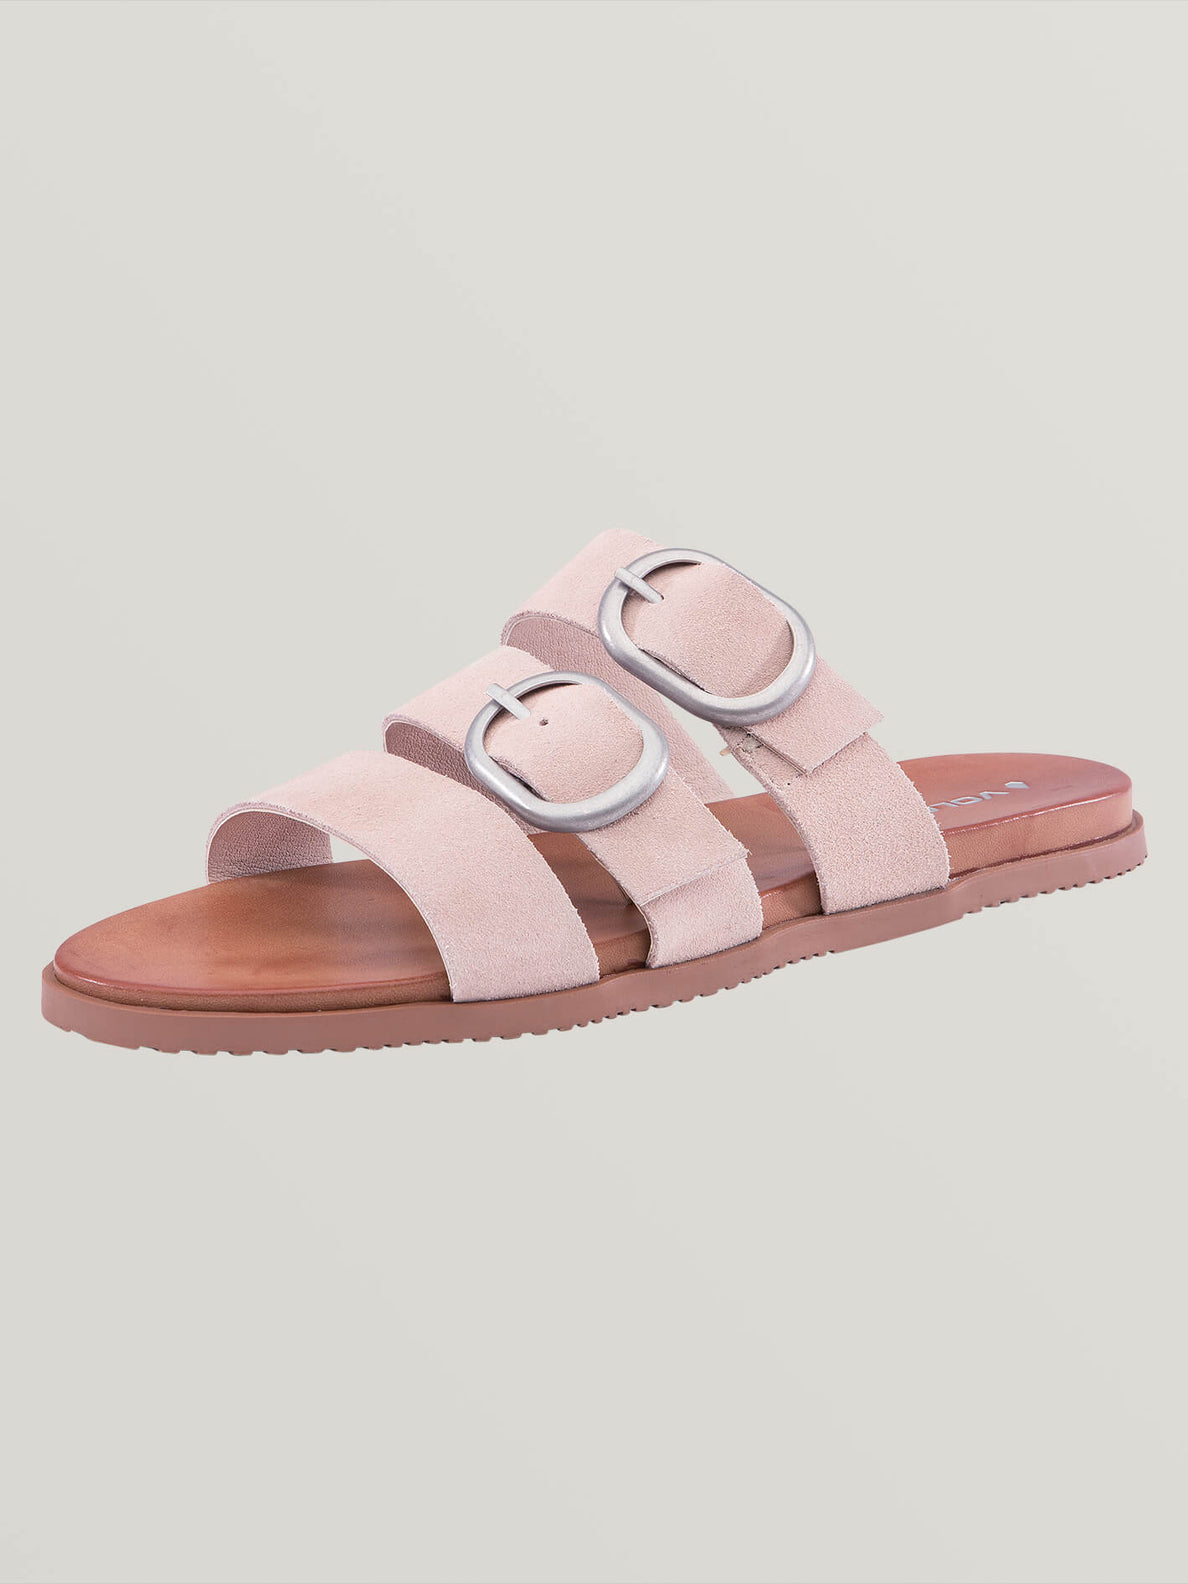 Buckle Up Buttercup Sandals In Mushroom, Back View